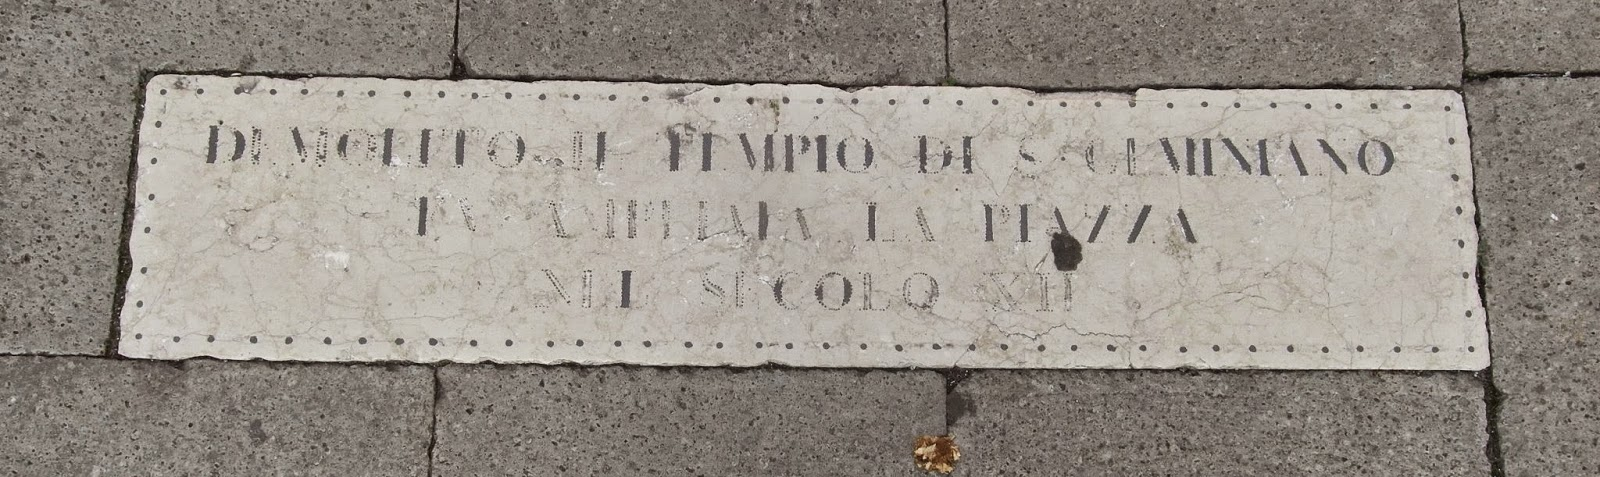 Plaque to the first church of San Geminiano, Piazza San Marco, Venice